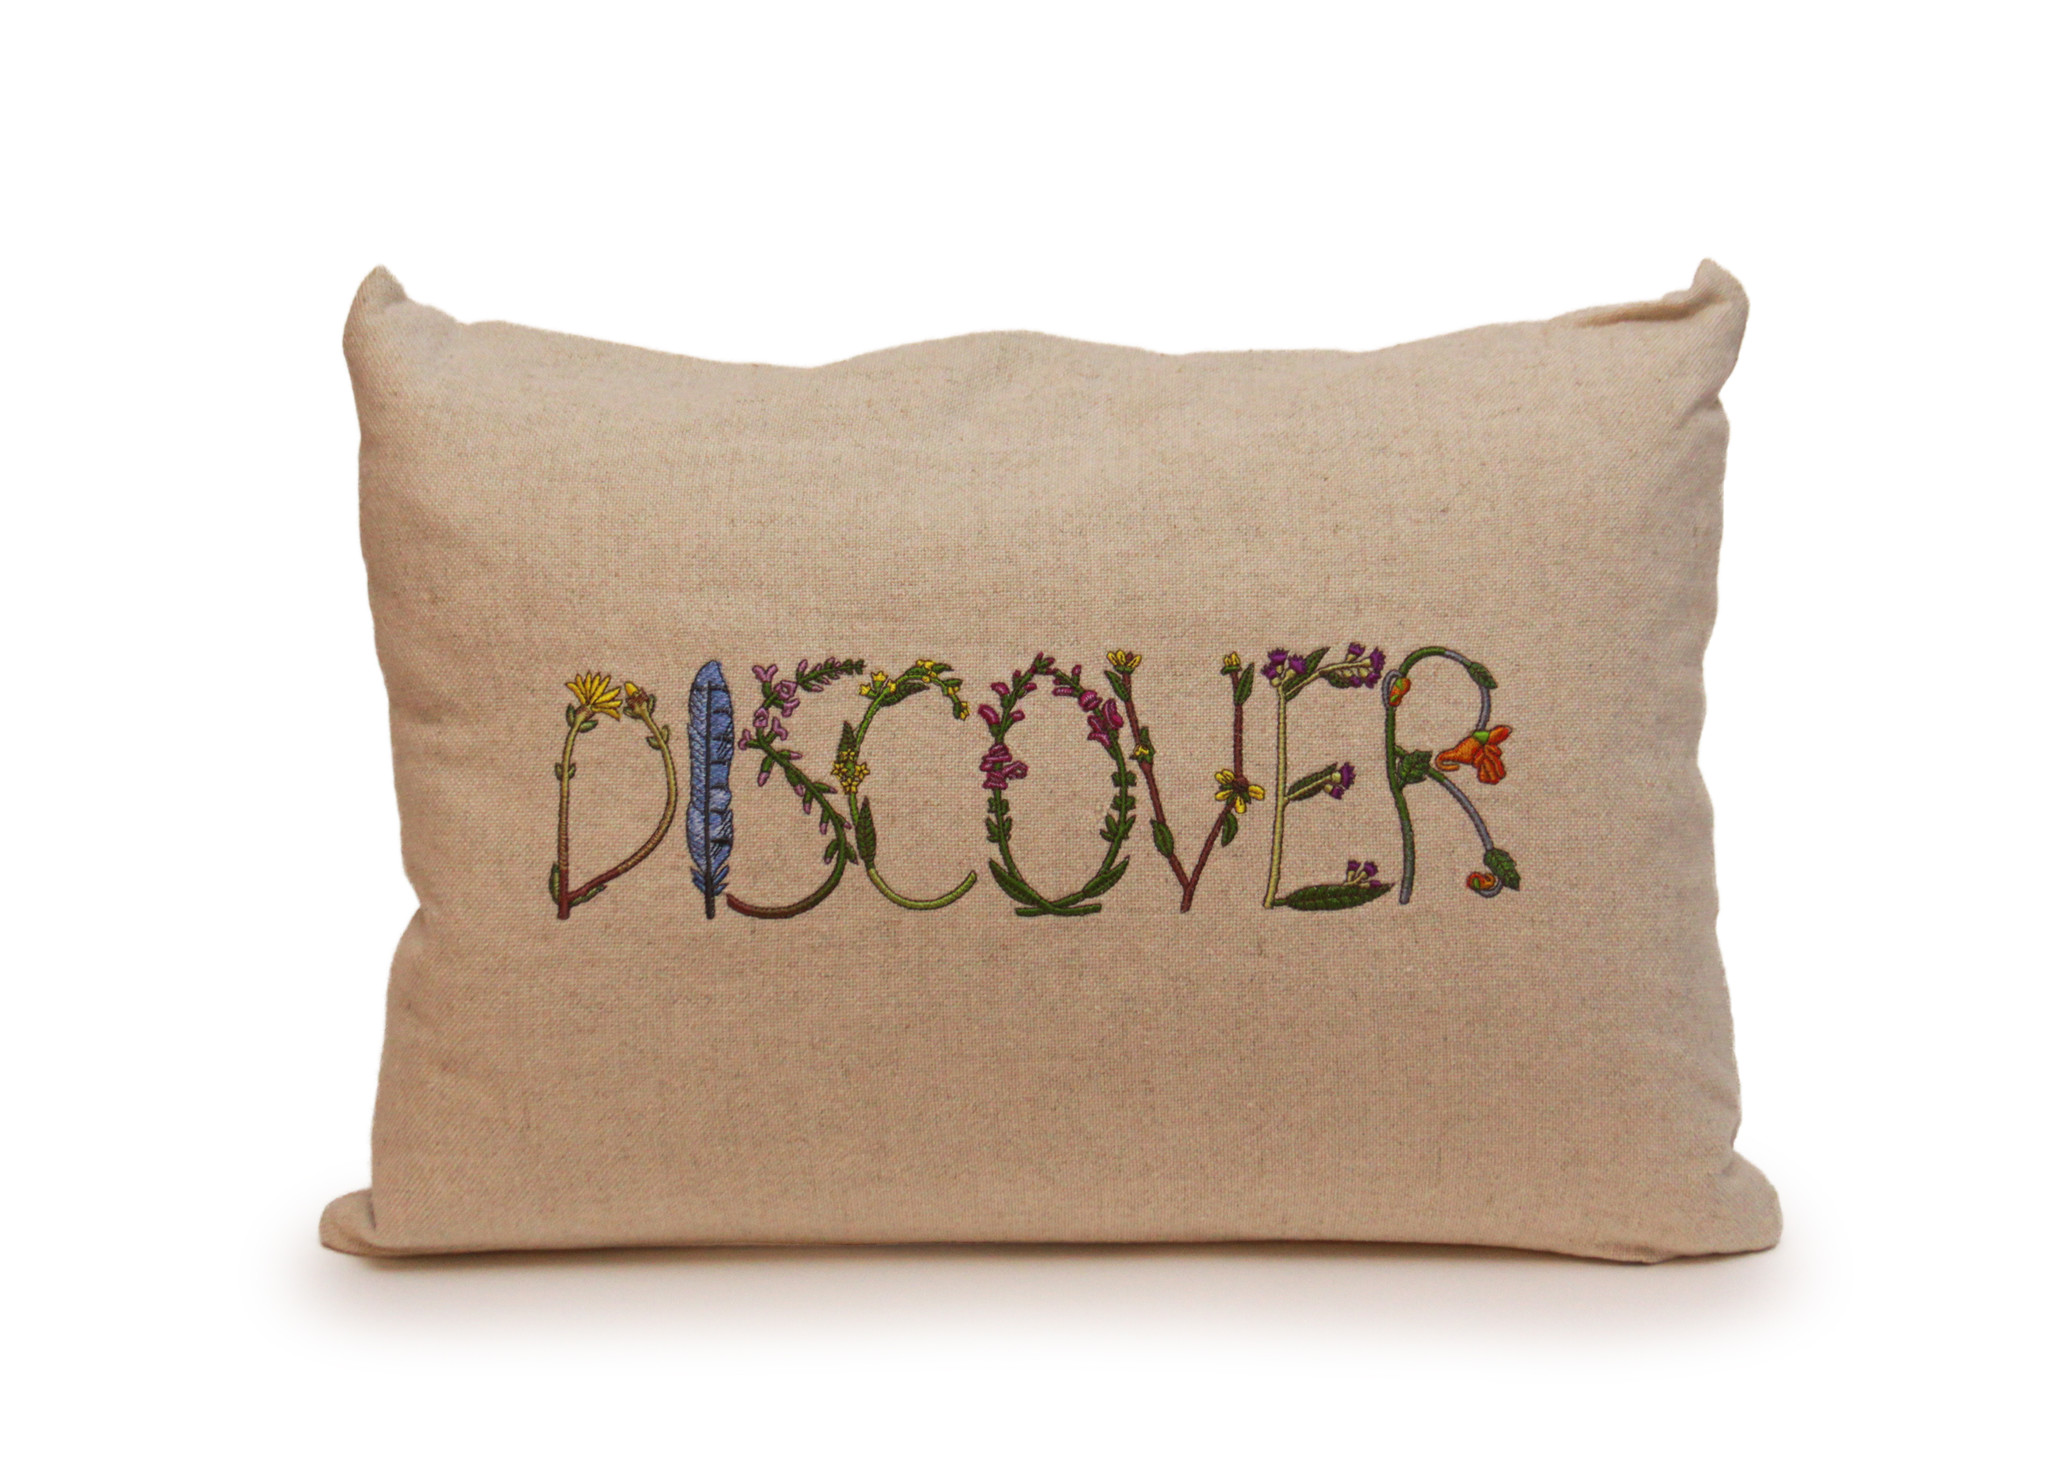 Laura Poulette Seasonal Pillows-1